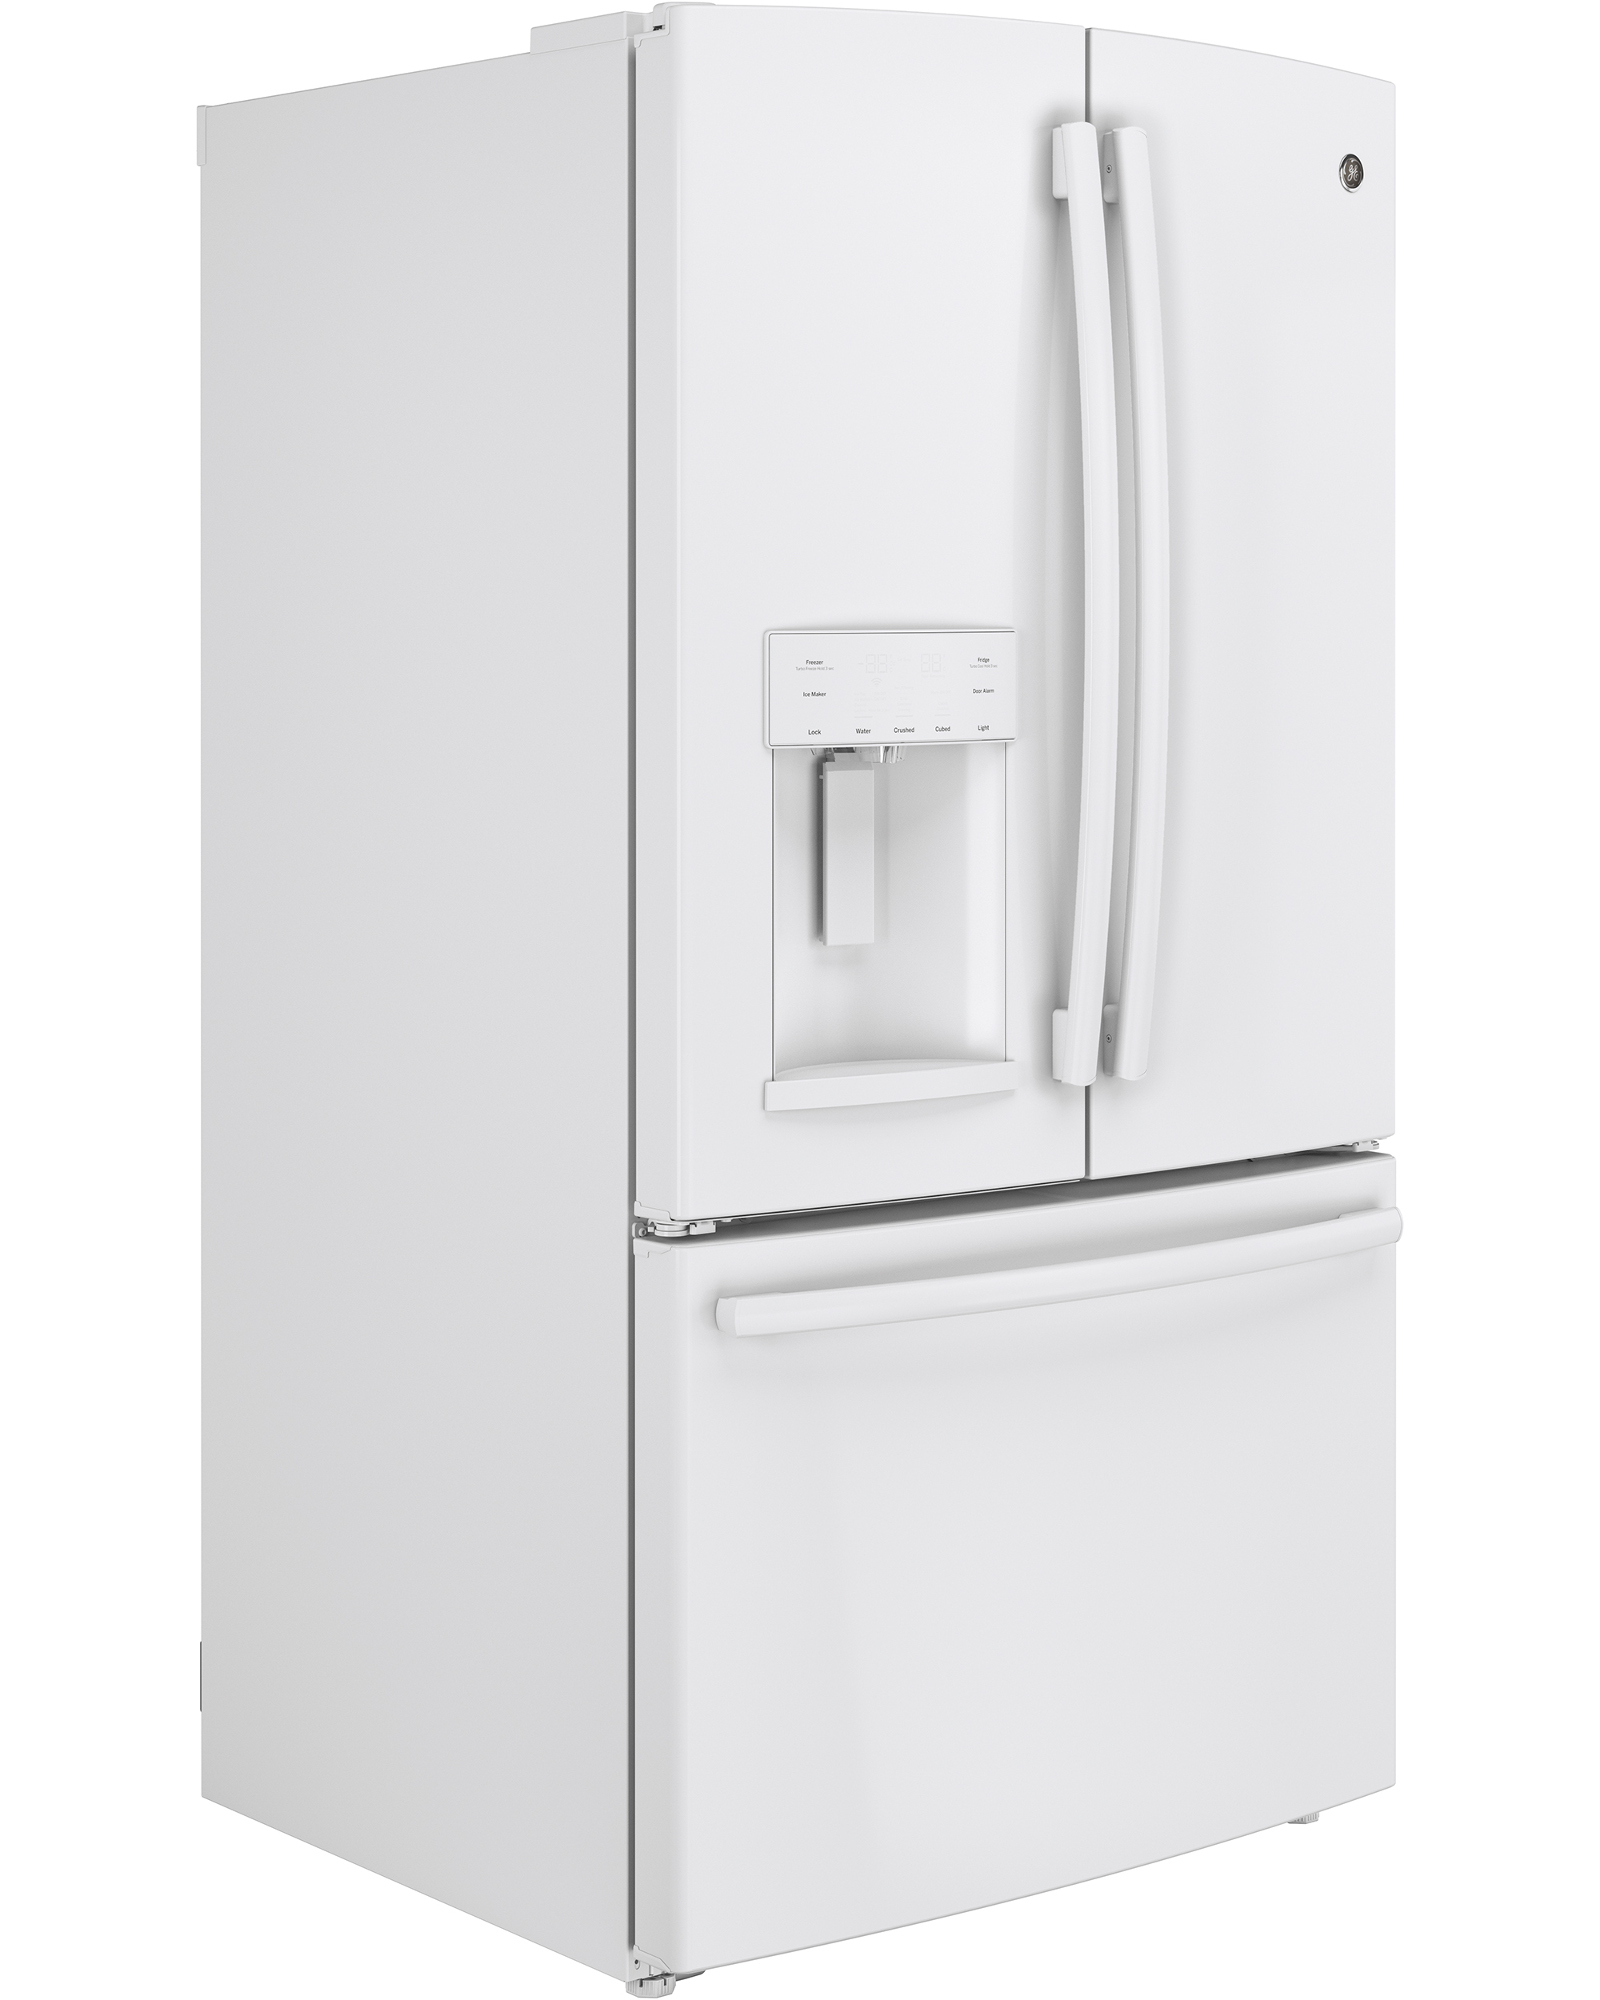 GE Appliances GFE26GGHWW 25.7 cu. ft. French-Door Ice and Water Refrigerator - White